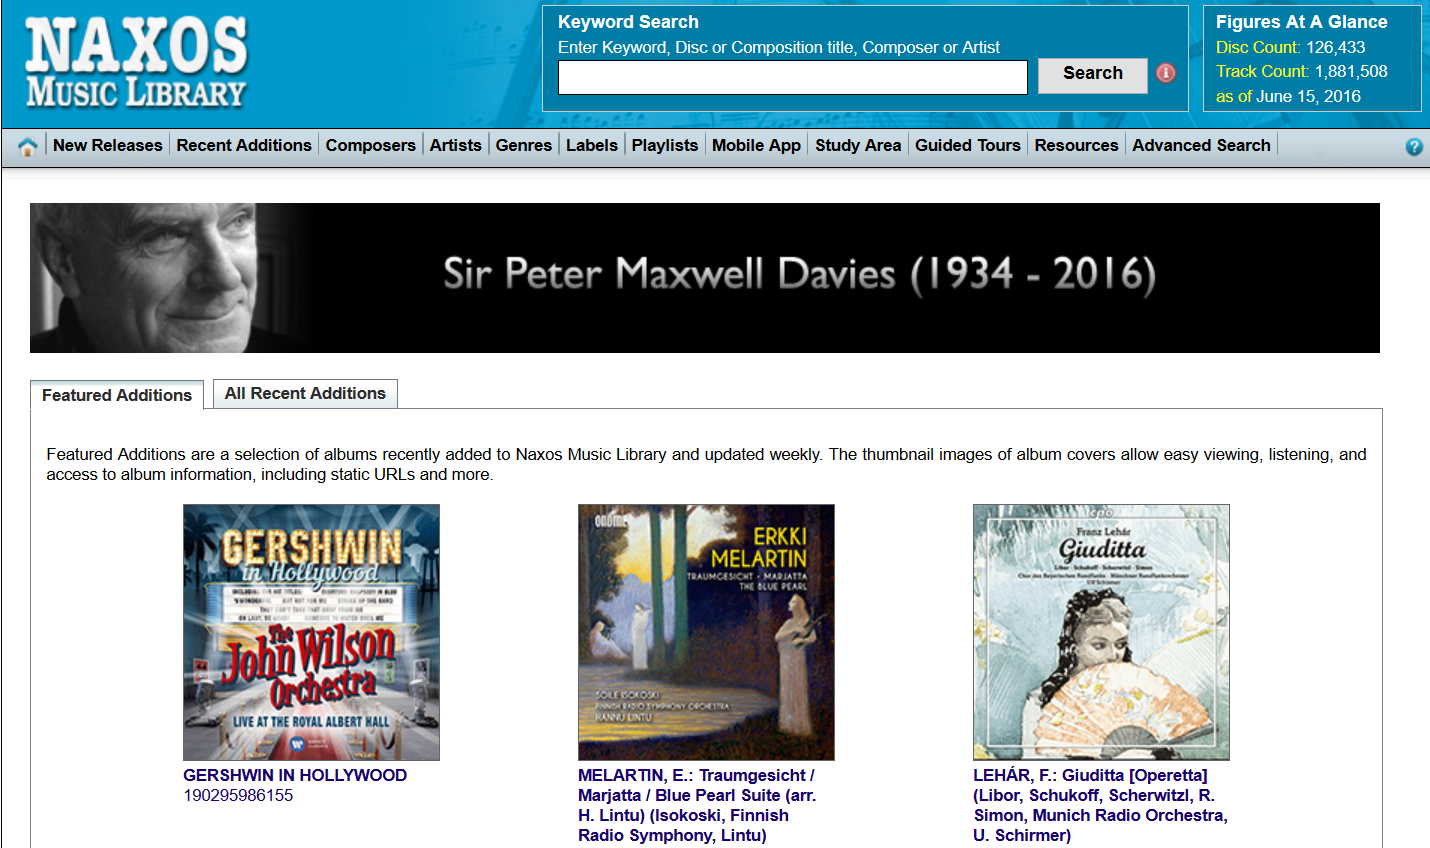 Naxos Online Music Library